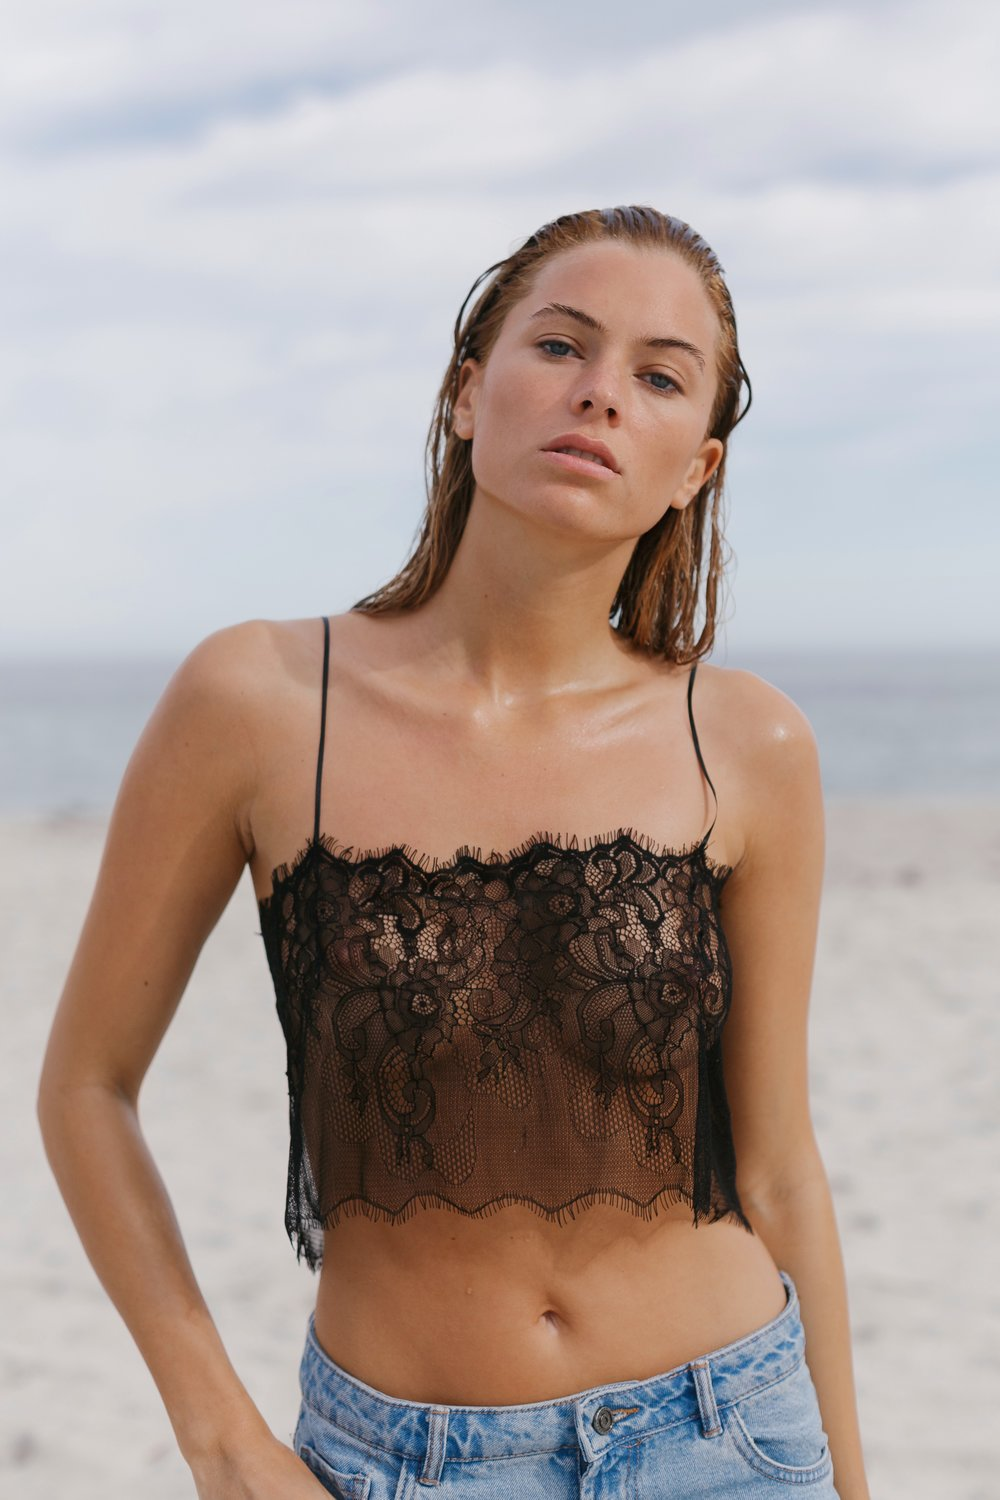 I-AM-ZAZIE-Swimwear-Aurora-Chantilly-Lace-Crop-Top-Apres-Swim-Bo-Bene-South-Africa-Beachwear-Lace-Cover-Up (1).jpg